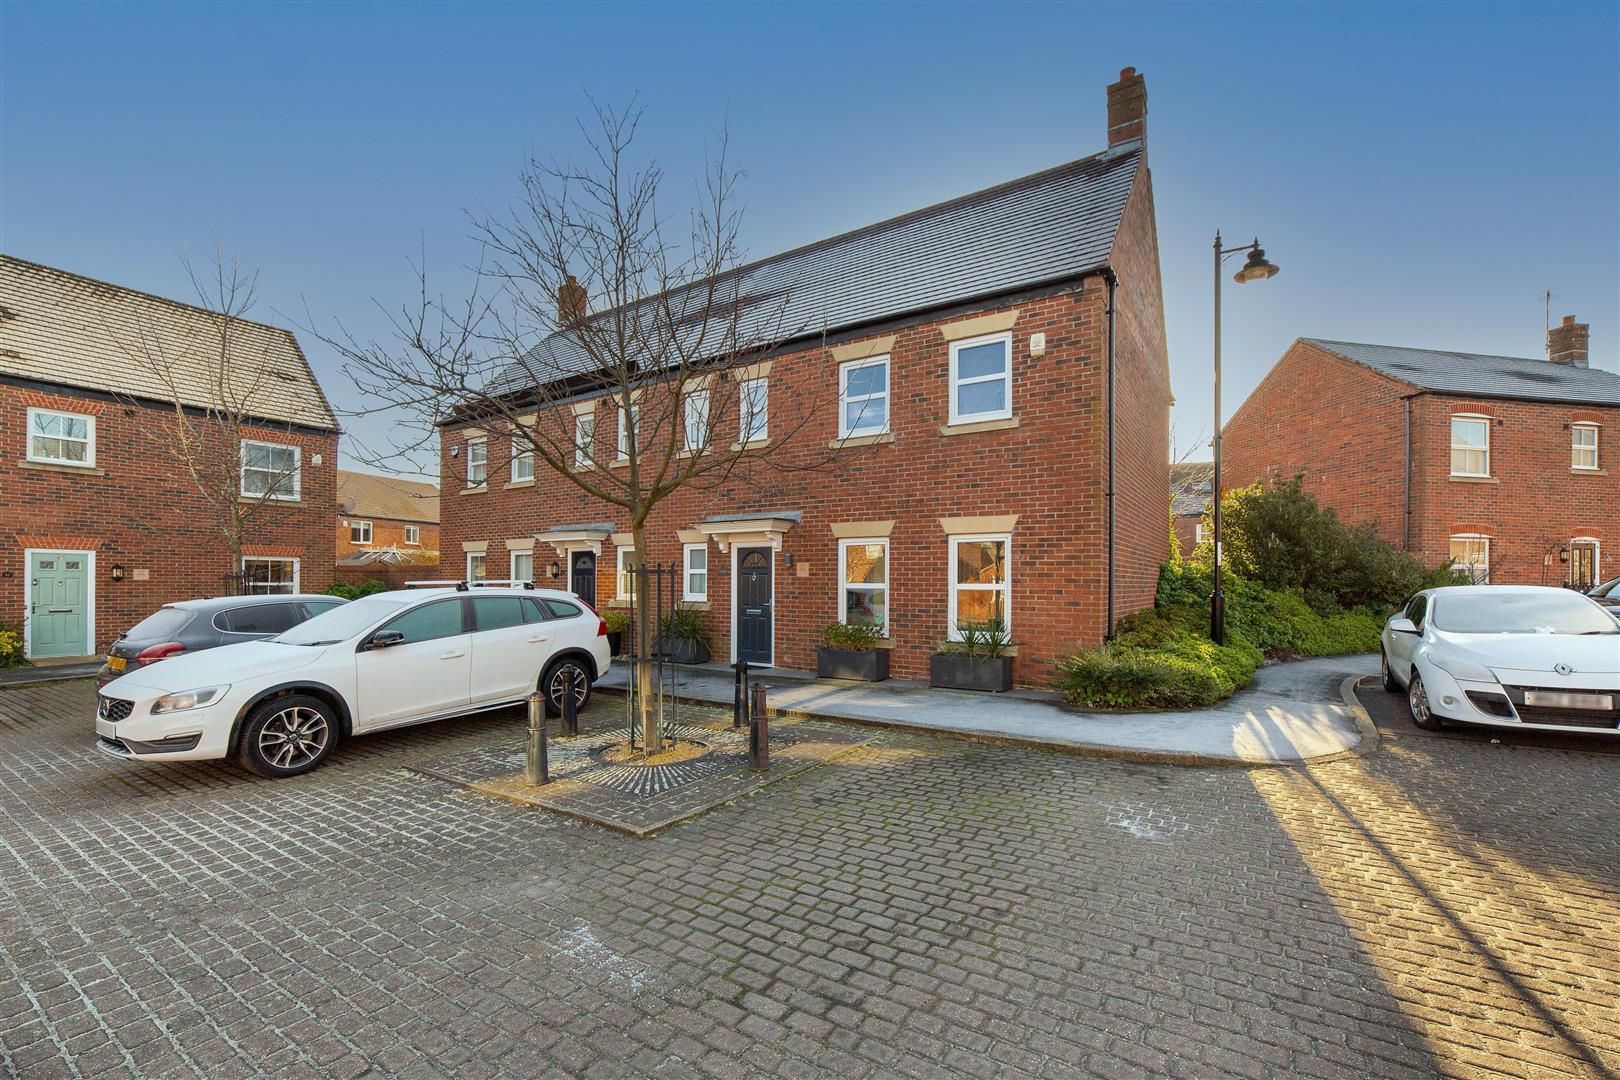 3 bed semi-detached house for sale in Newcastle Upon Tyne, NE3 5RA, NE3